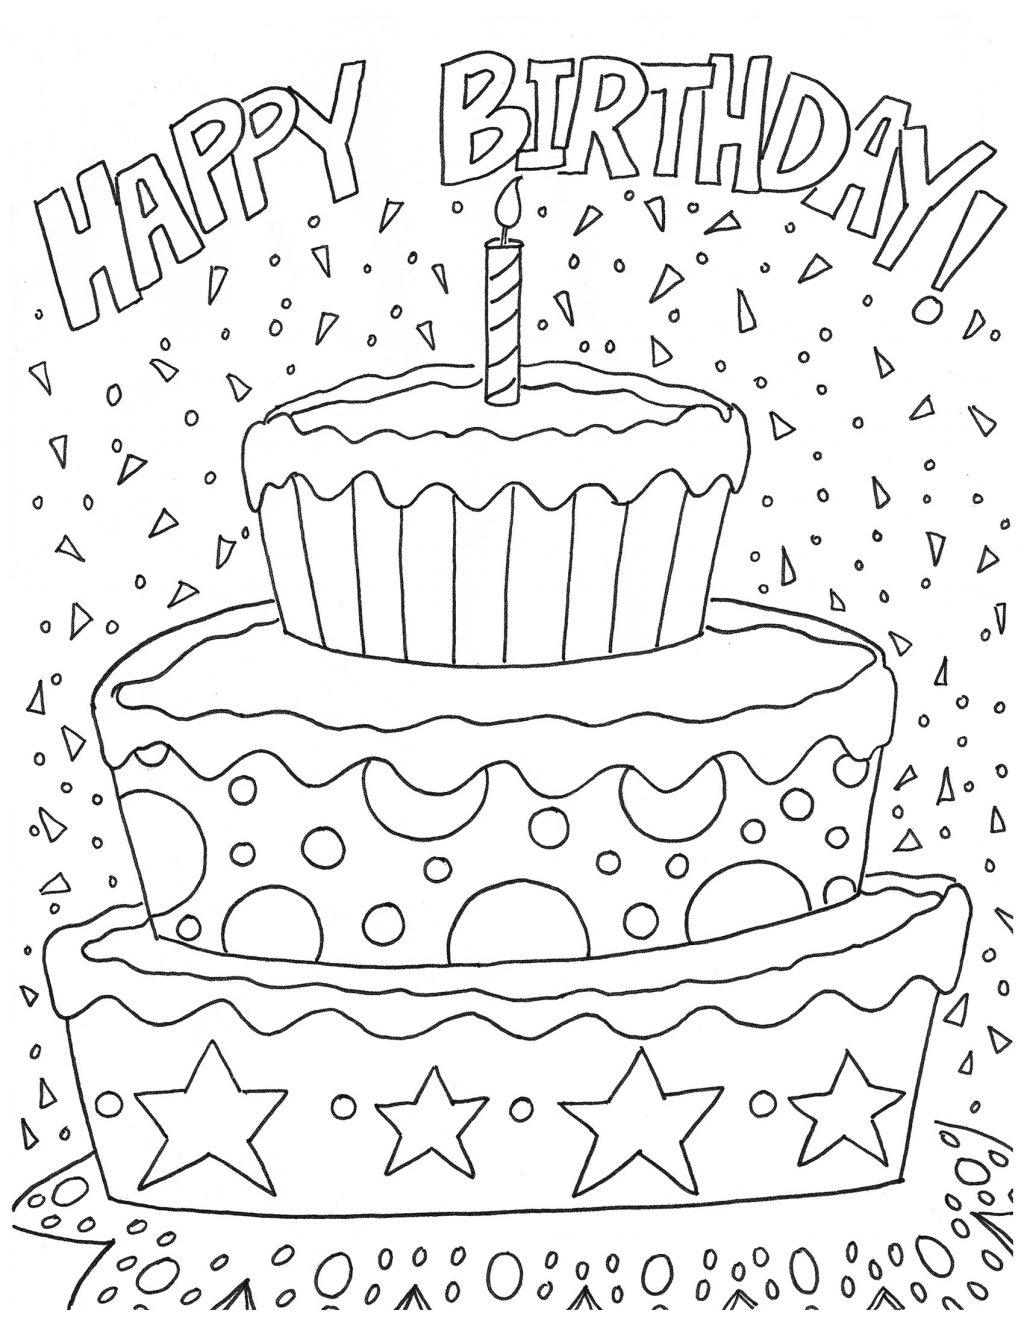 personalized birthday coloring pages ; Extraordinary-Birthday-Cute-Birthday-Coloring-Book